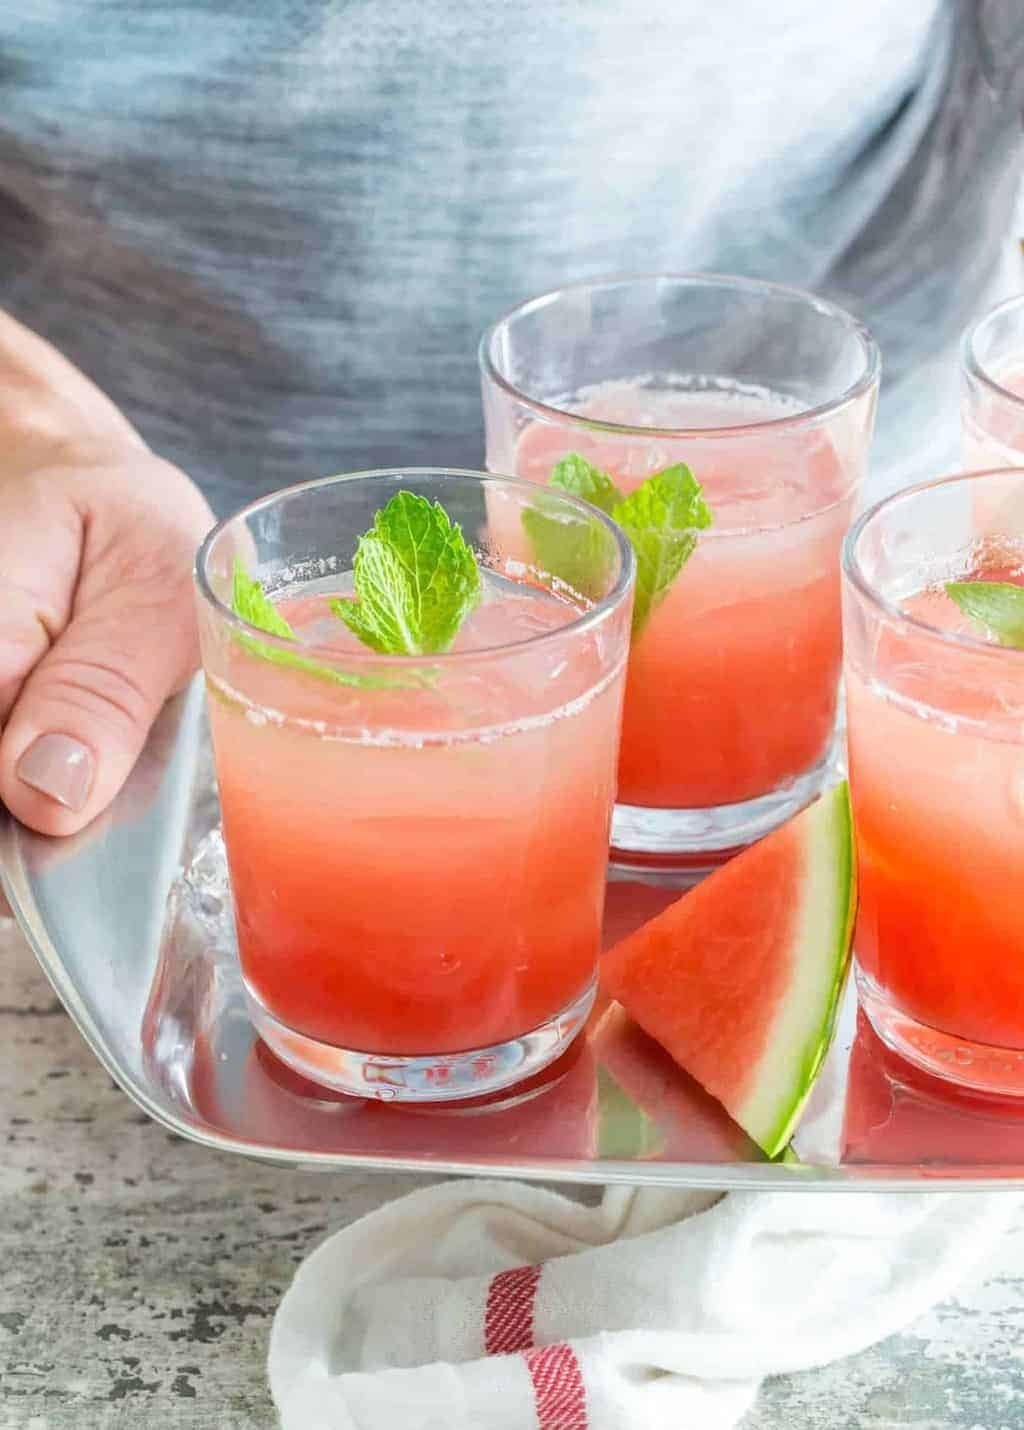 Watermelon Gin Punch - Garnish with Lemon